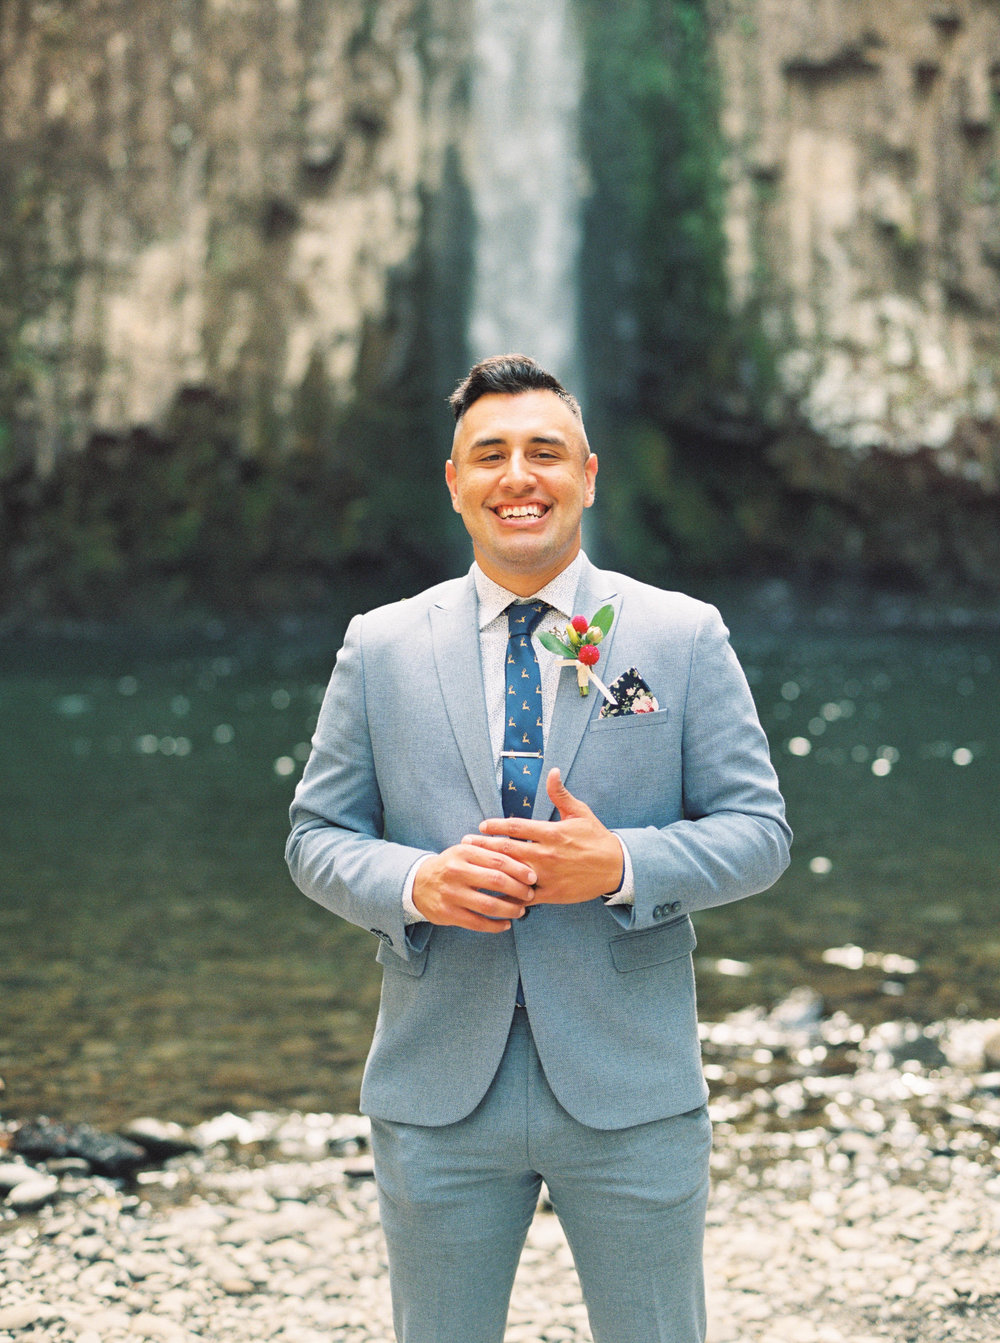 abiqua_falls_elopement_wedding_oregon_photographer_videographer_059.jpg